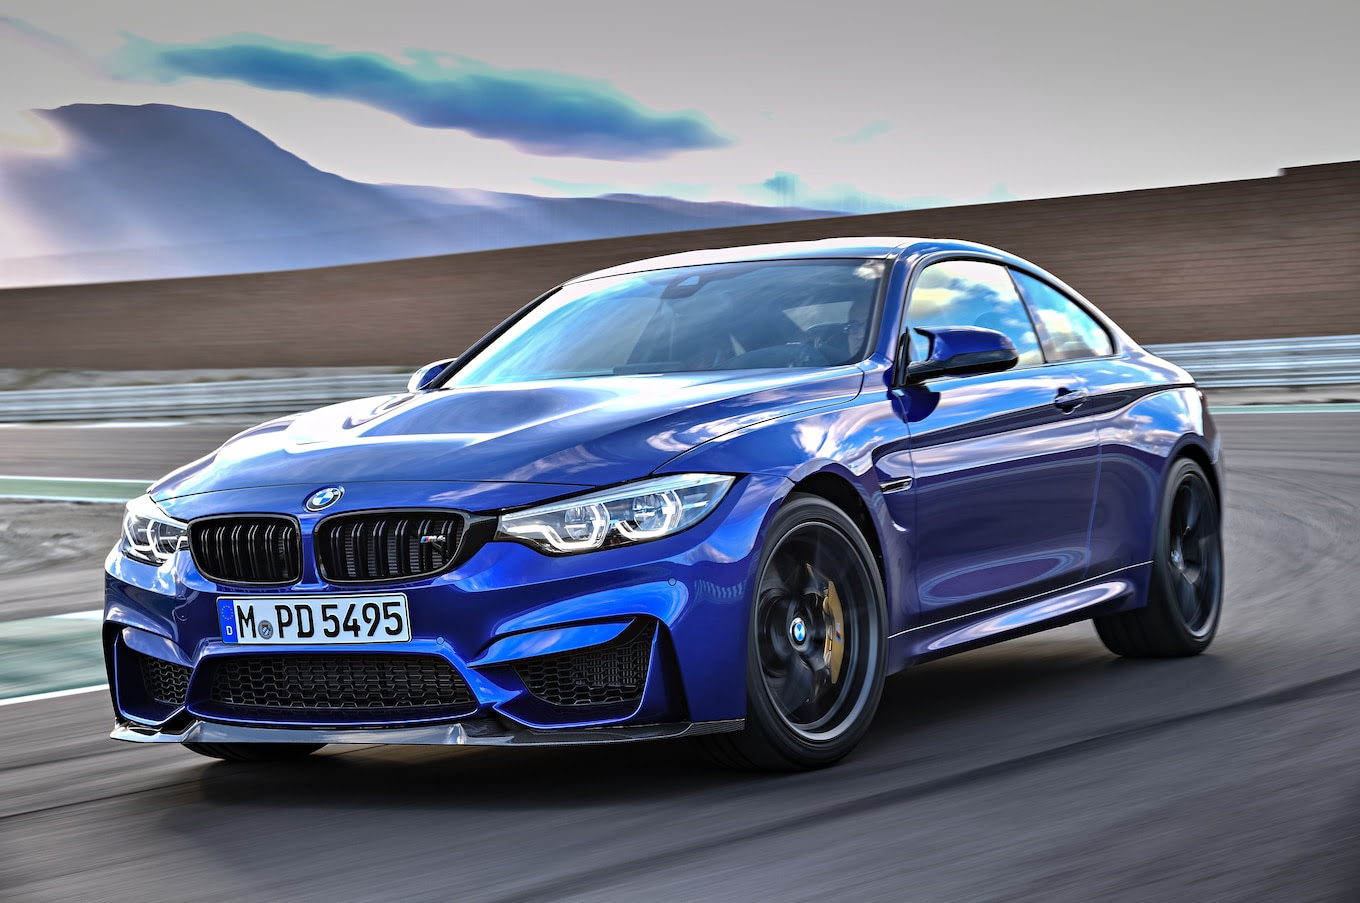 BMW M4 CS Delivers 454 HP, Will Come to U.S. - Motor Trend